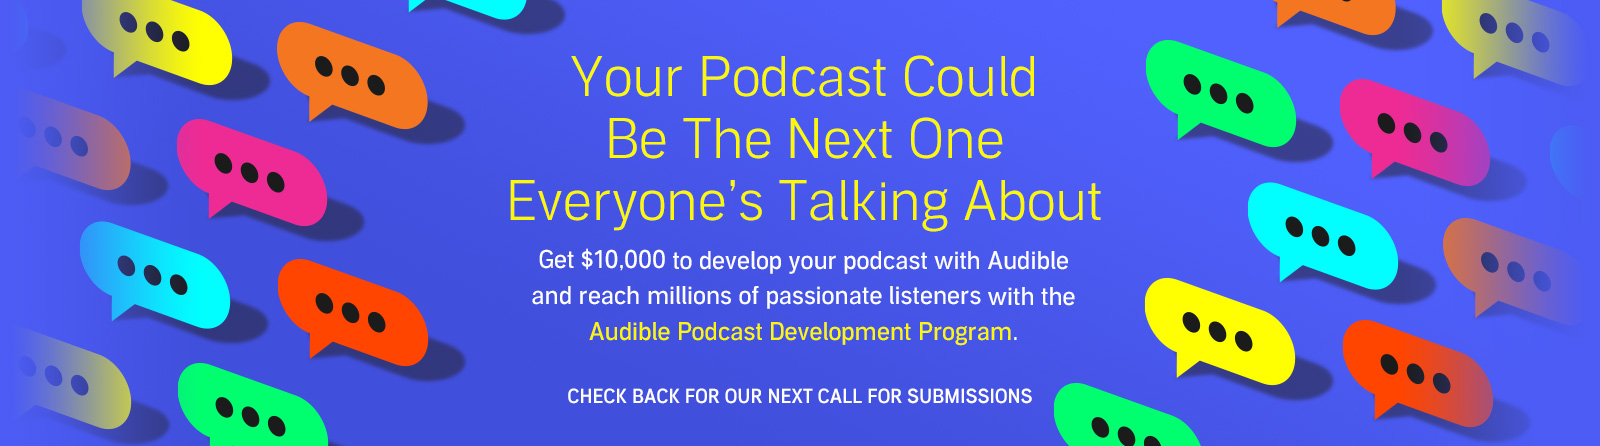 Develop your podcast with Audible